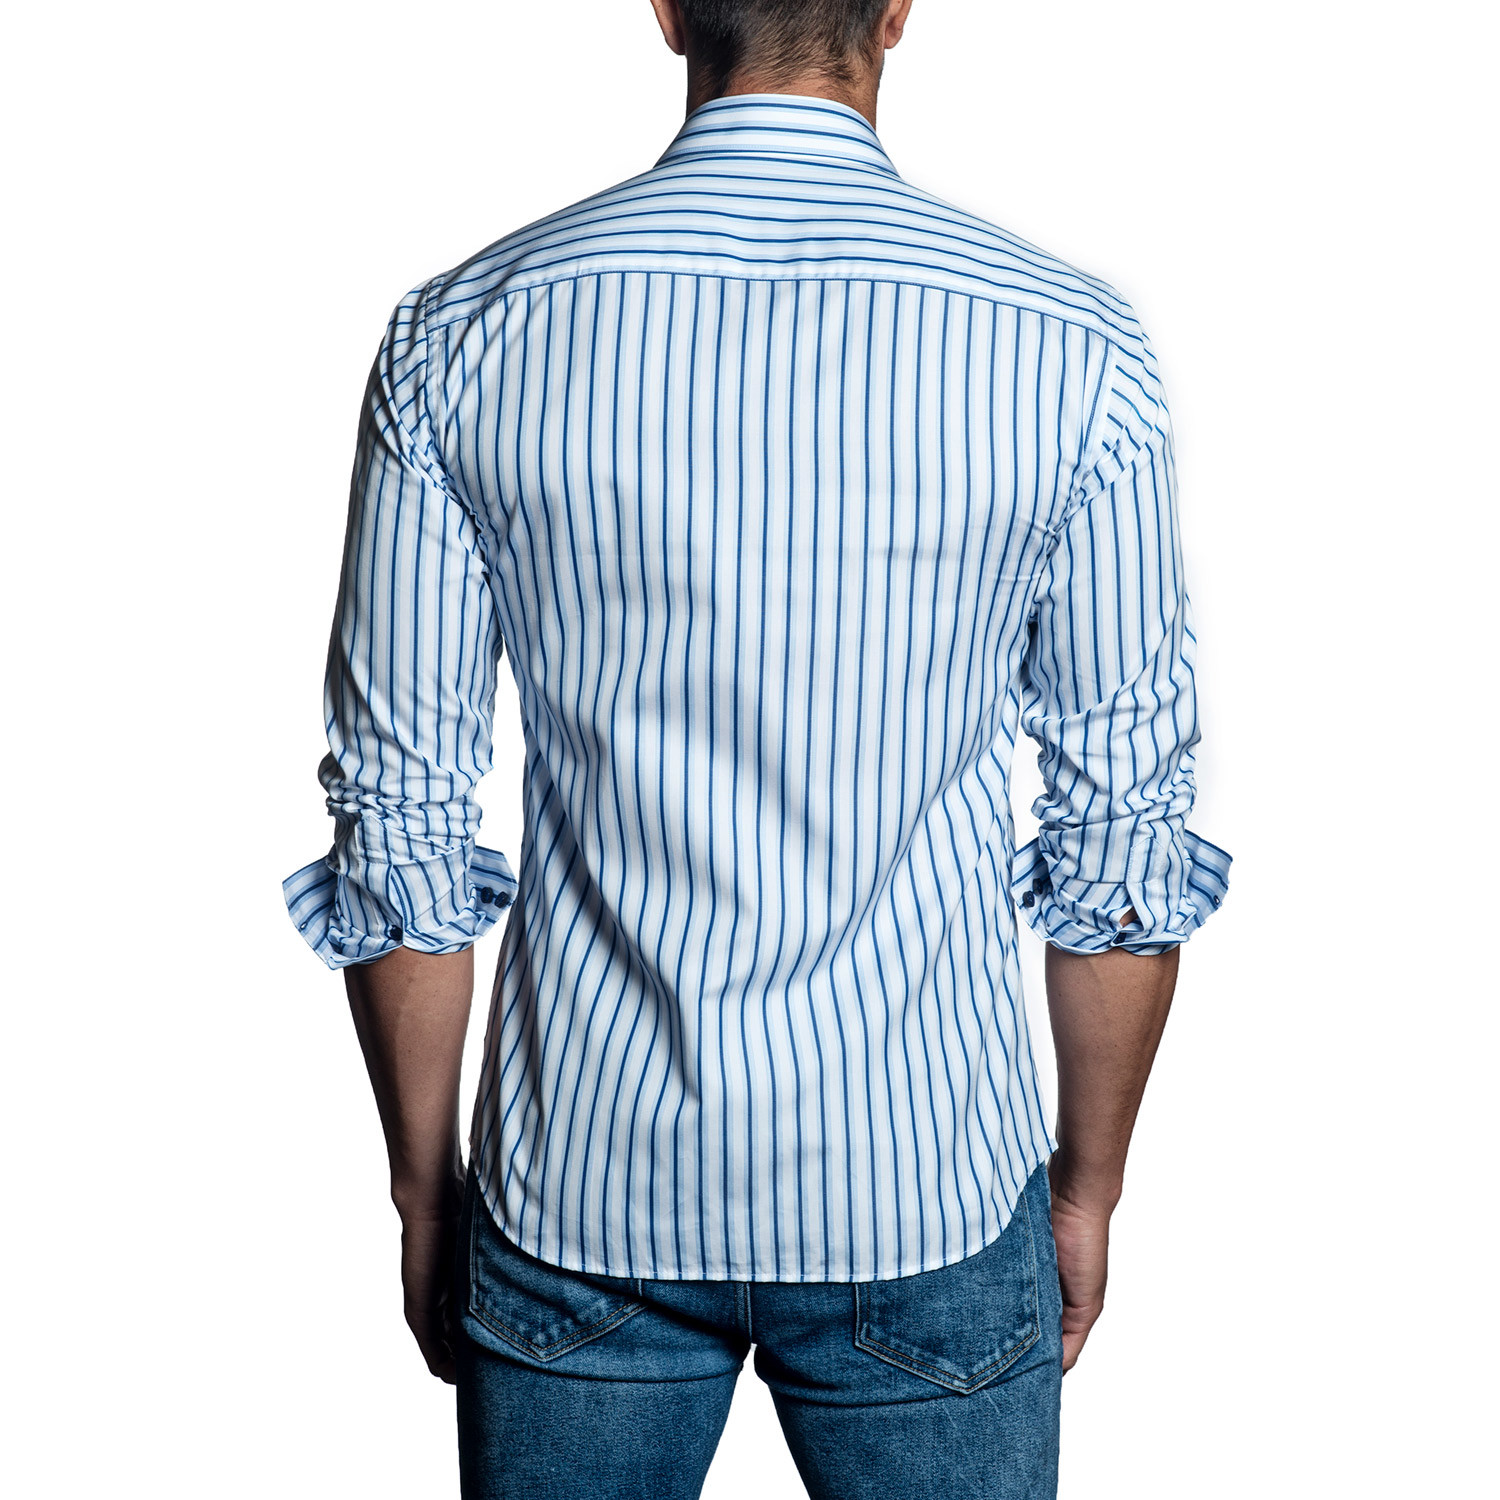 Striped Long Sleeve Shirt White Blue L Clearance